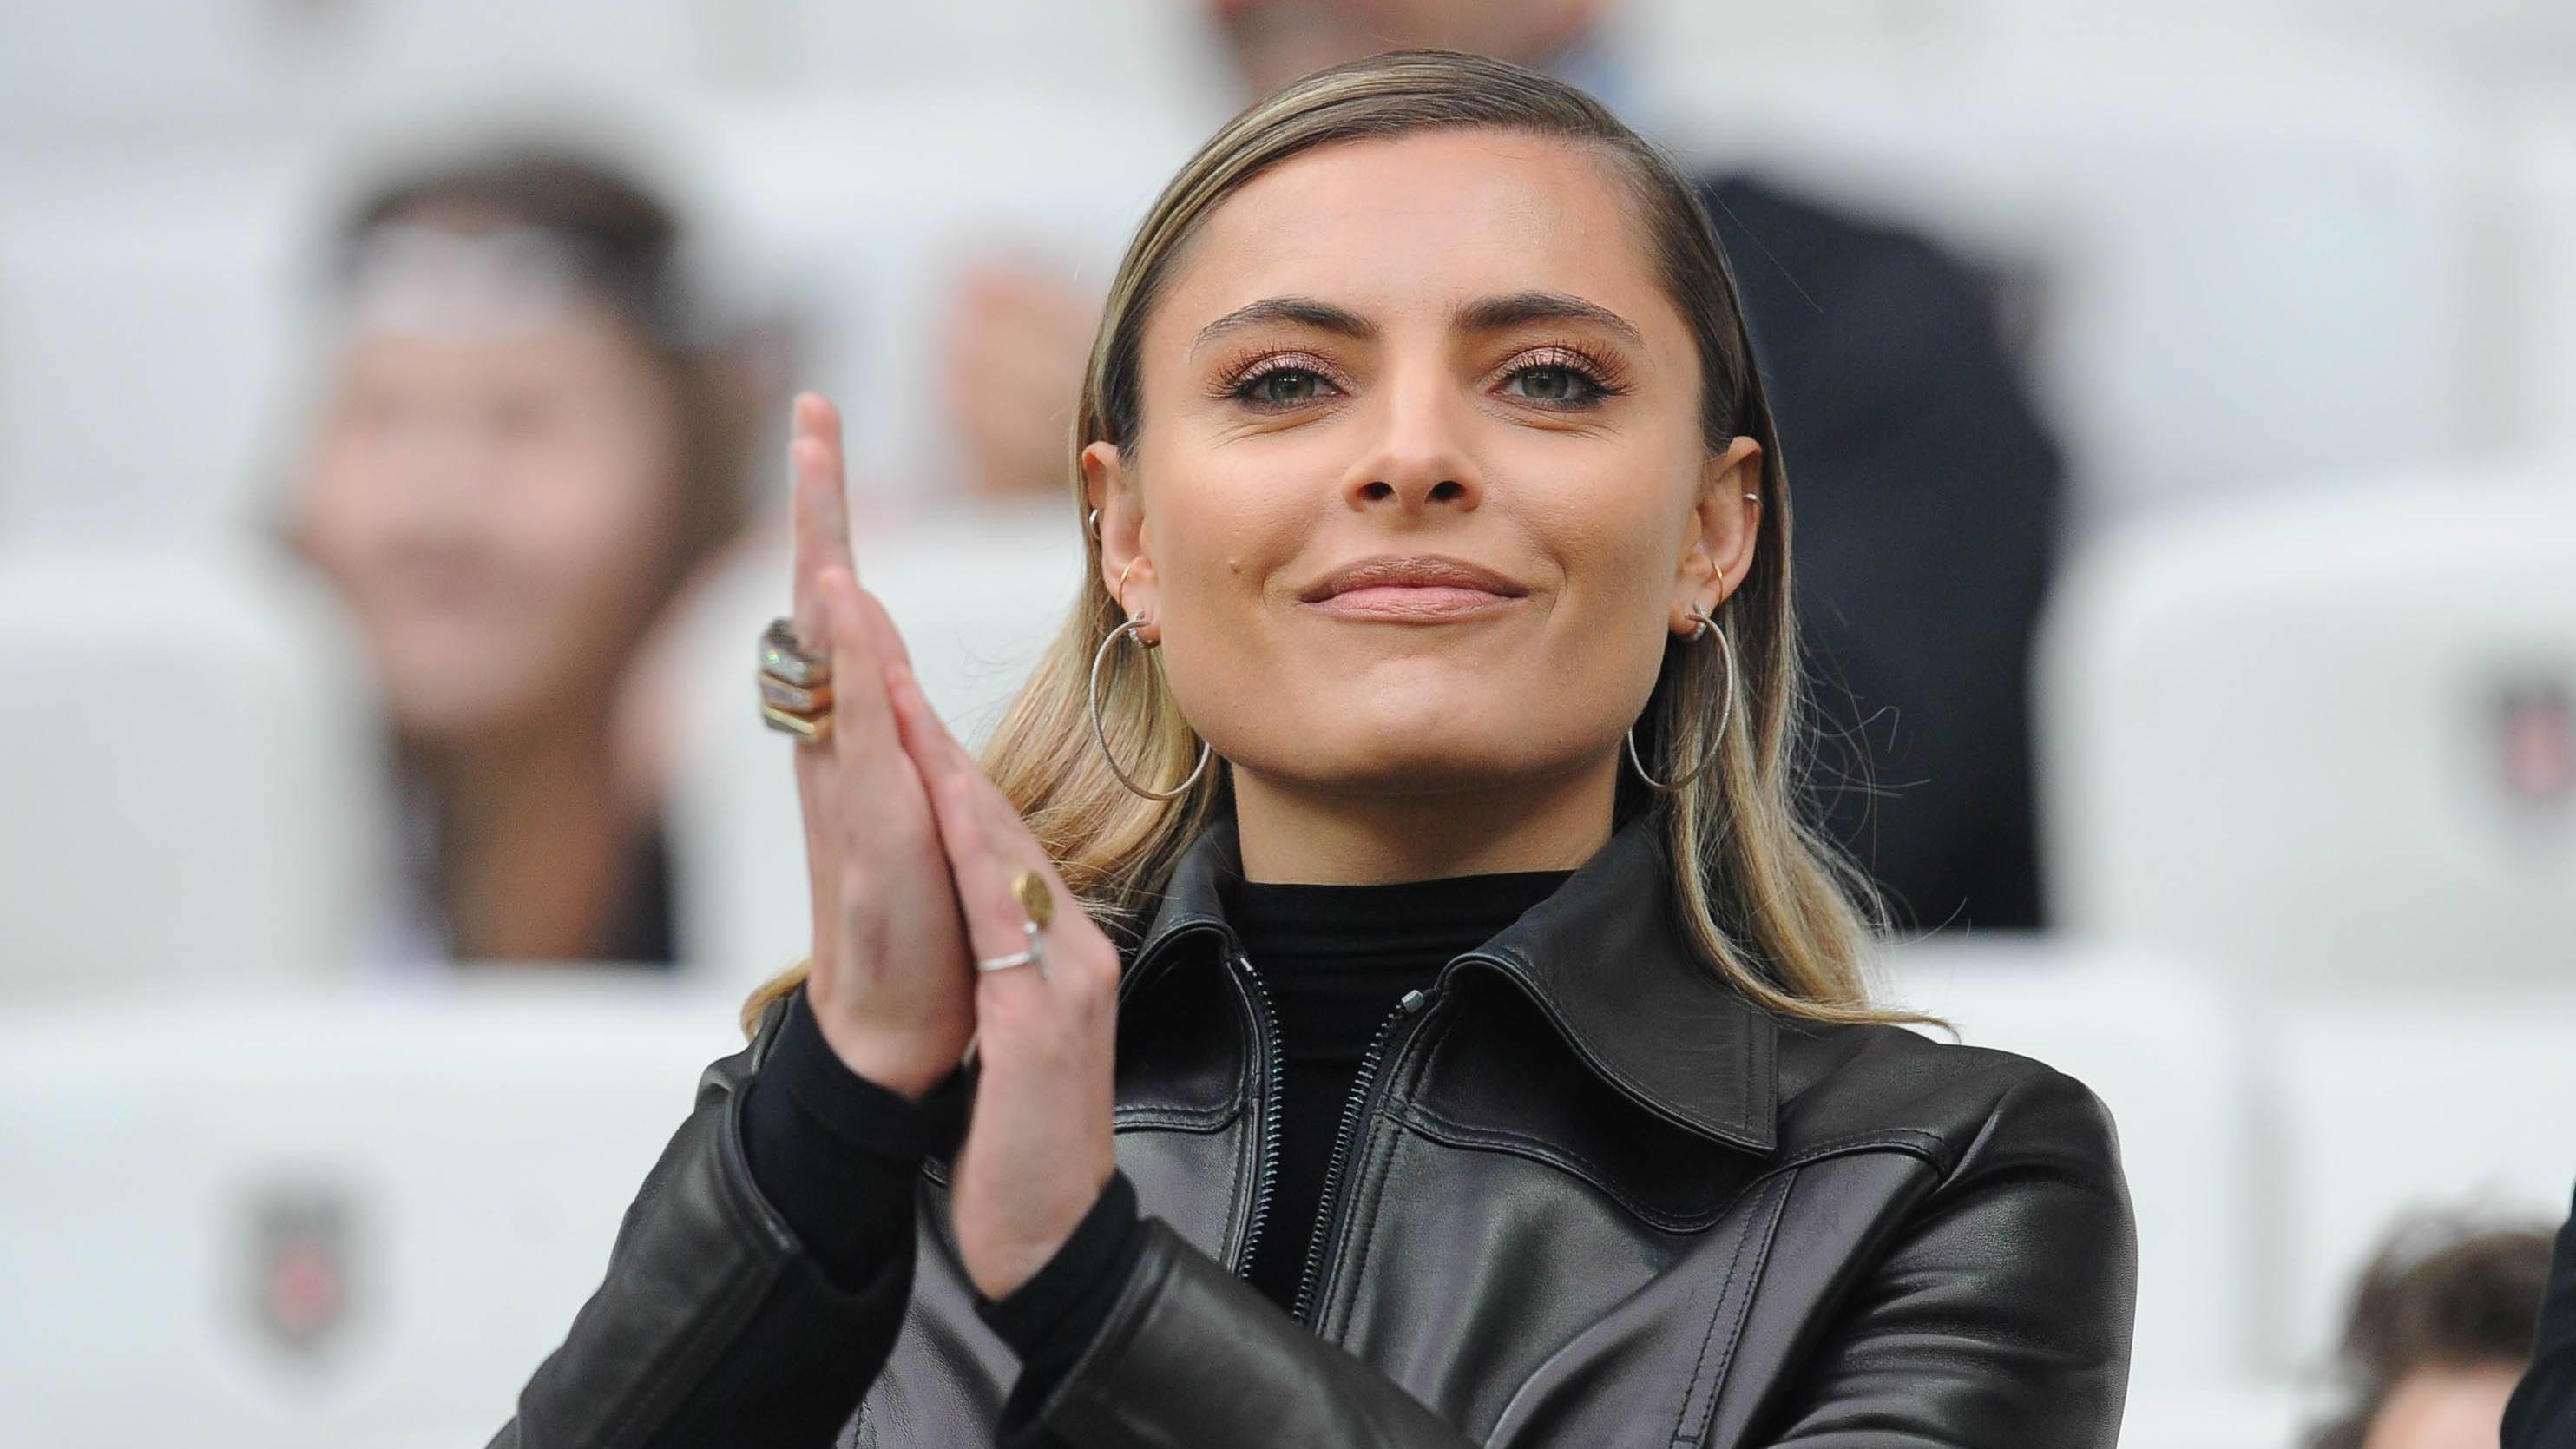 Besiktas s goalkeeper Loris Karius s girlfriend German model Sophia Thomalla during the Turkish Super League football match between Besiktas and Goztepe at Vodafone Park in Istanbul , Turkey on March 16 , 2019. PUBLICATIONxNOTxINxTUR